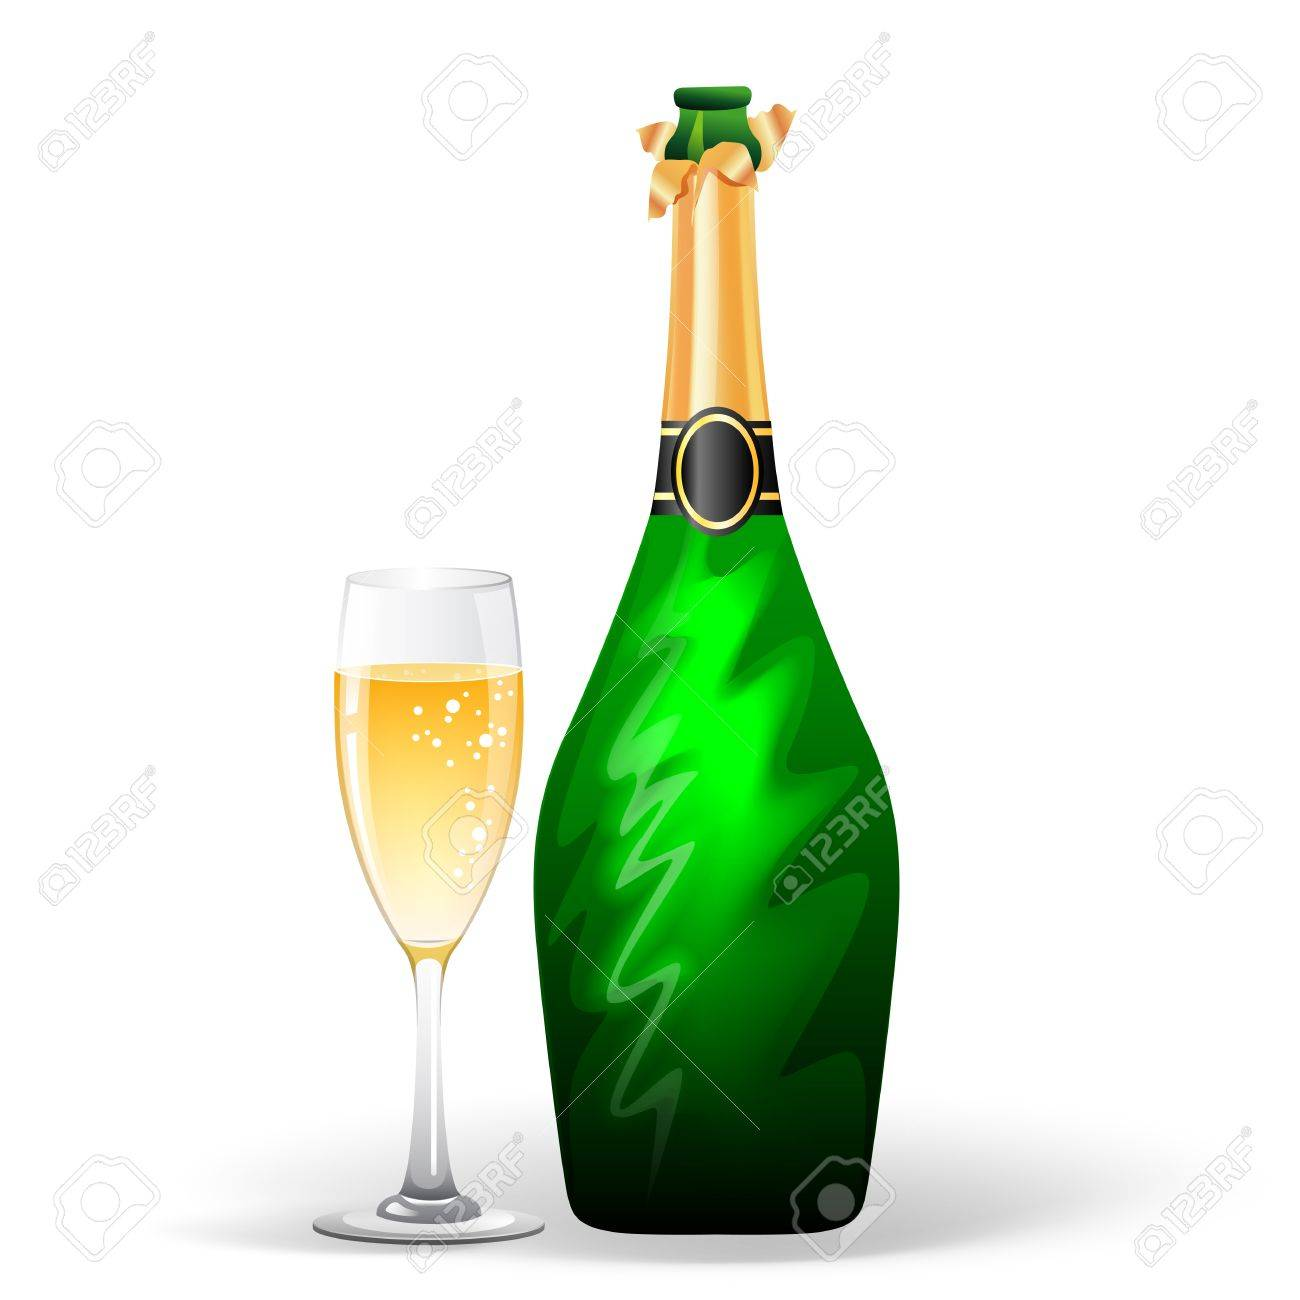 vector illustration eps 10 of champagne bottle and glass royalty